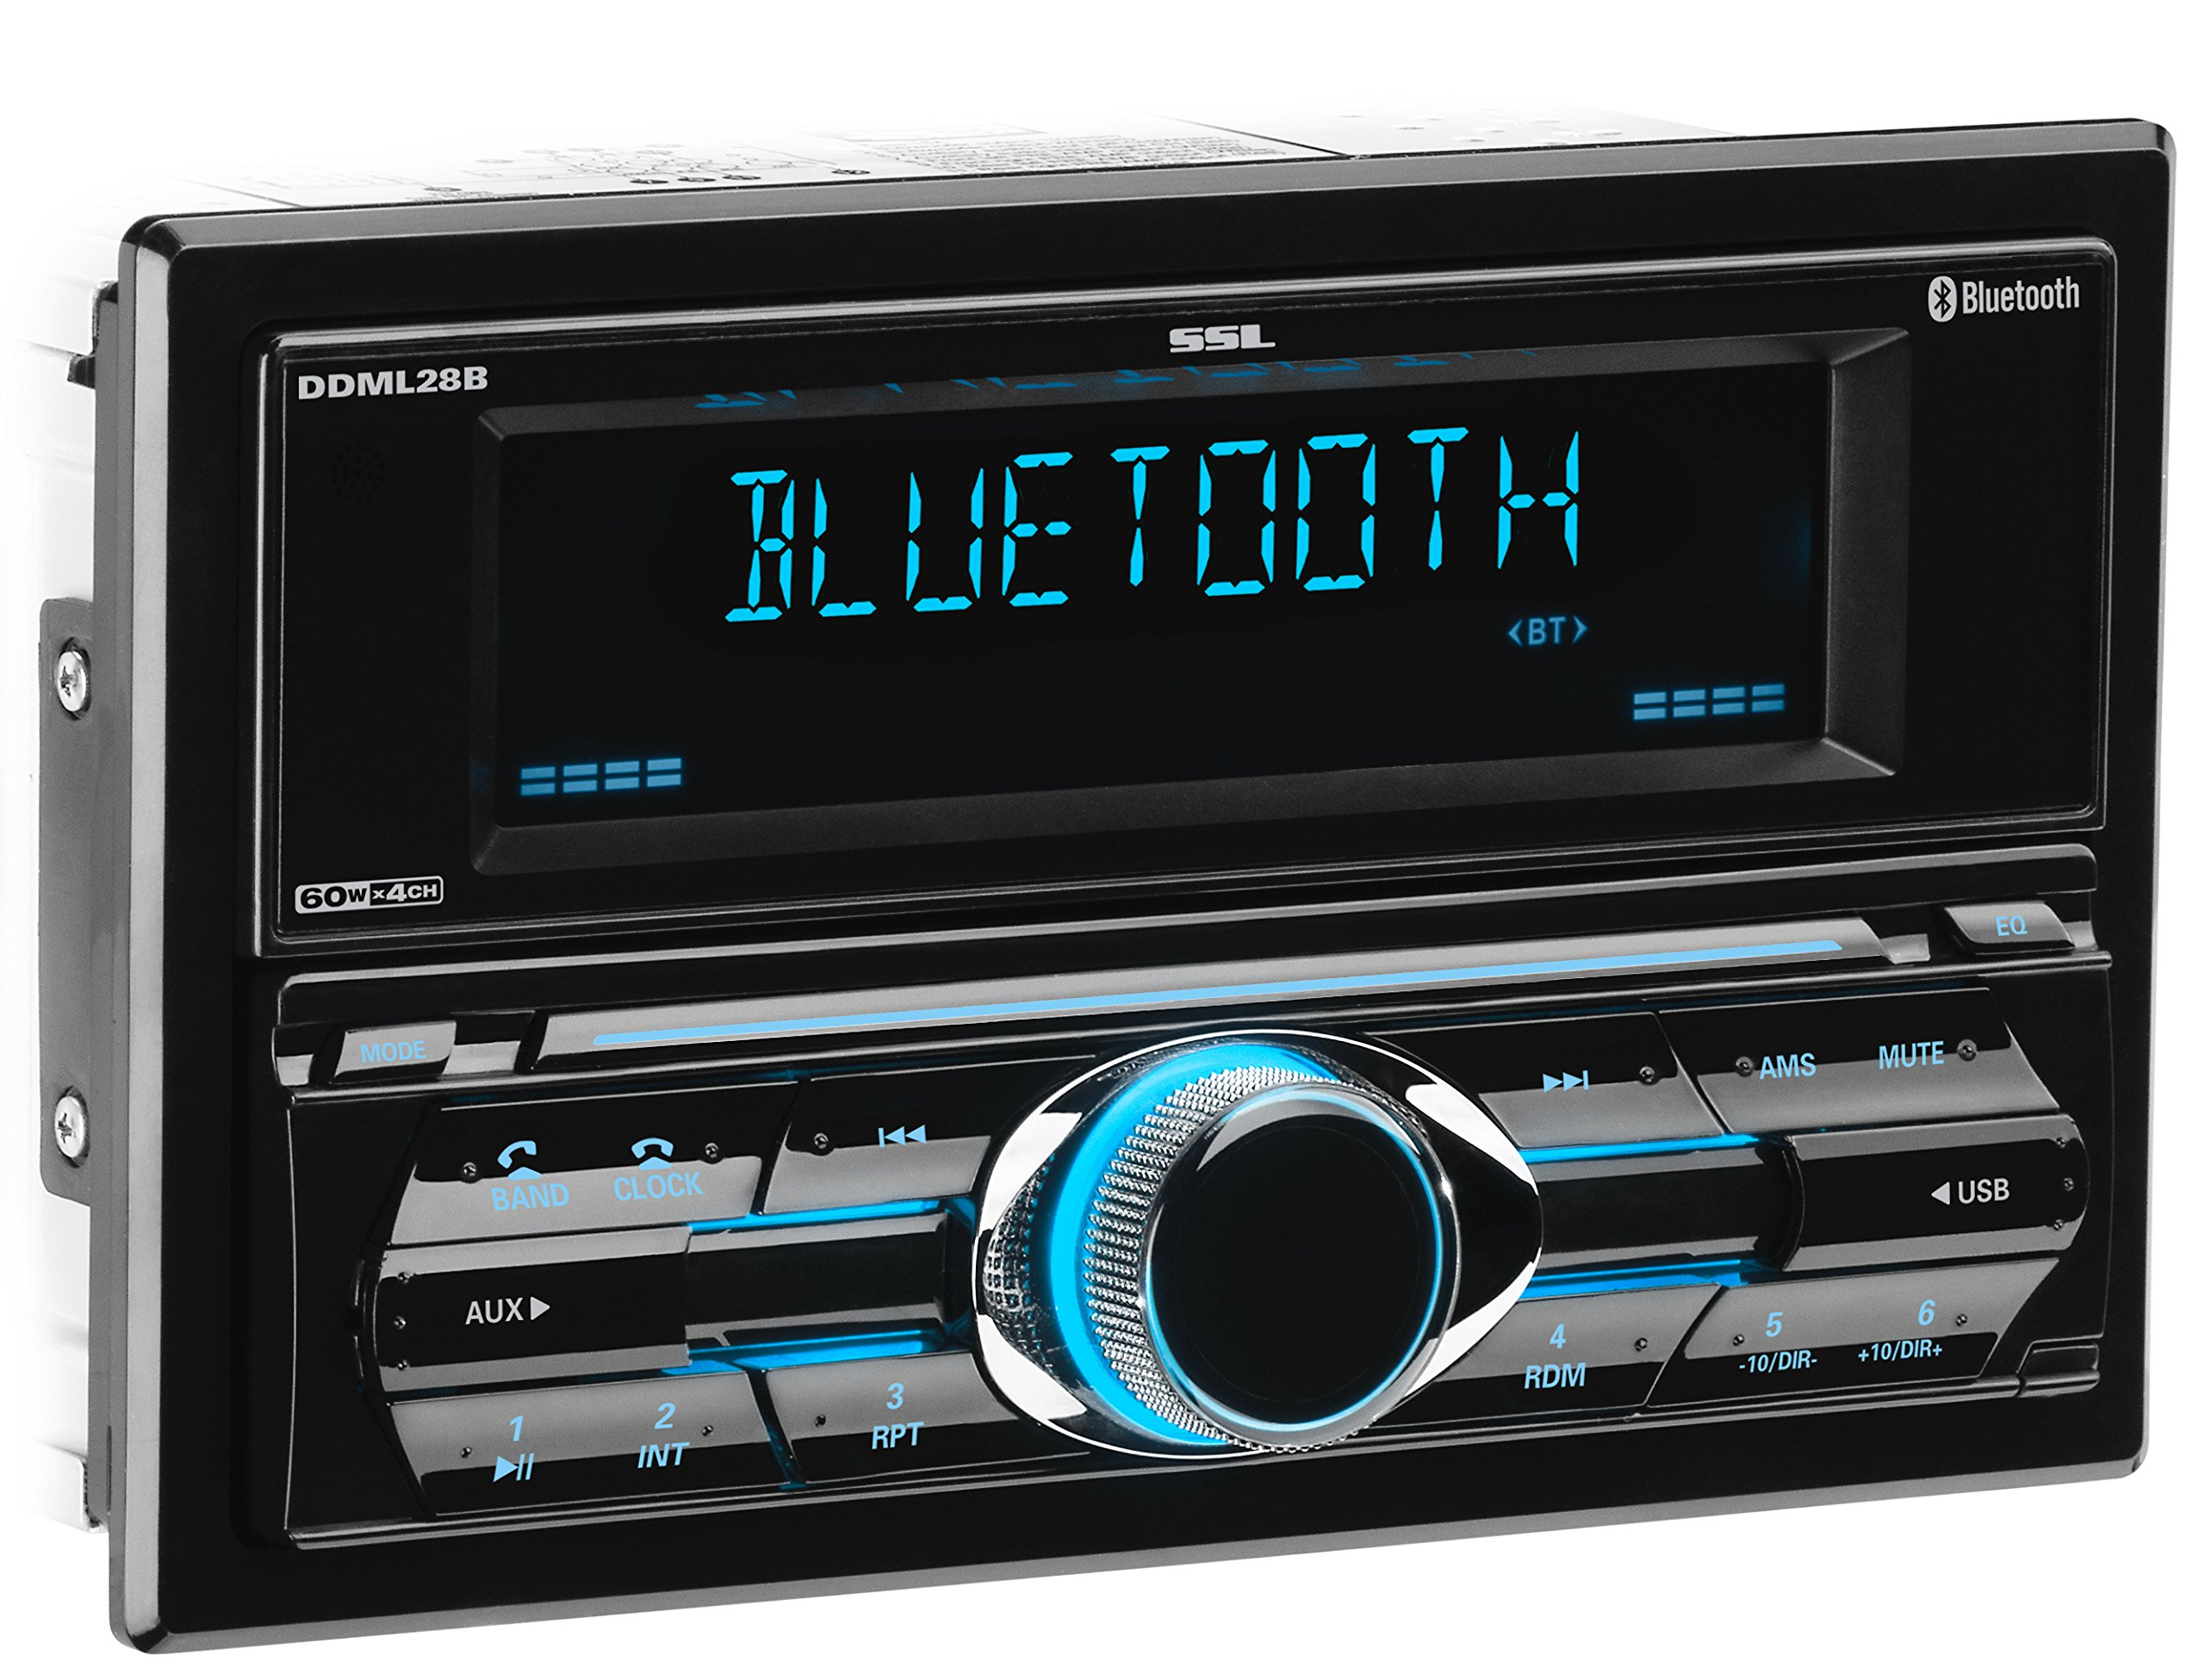 Sound Storm DDML28B Multimedia Car Stereo – Double Din, Bluetooth Audio and Hands-Free Calling, MP3 Player, USB Port, AUX Input, AM/FM Radio Receiver, (No CD/DVD)